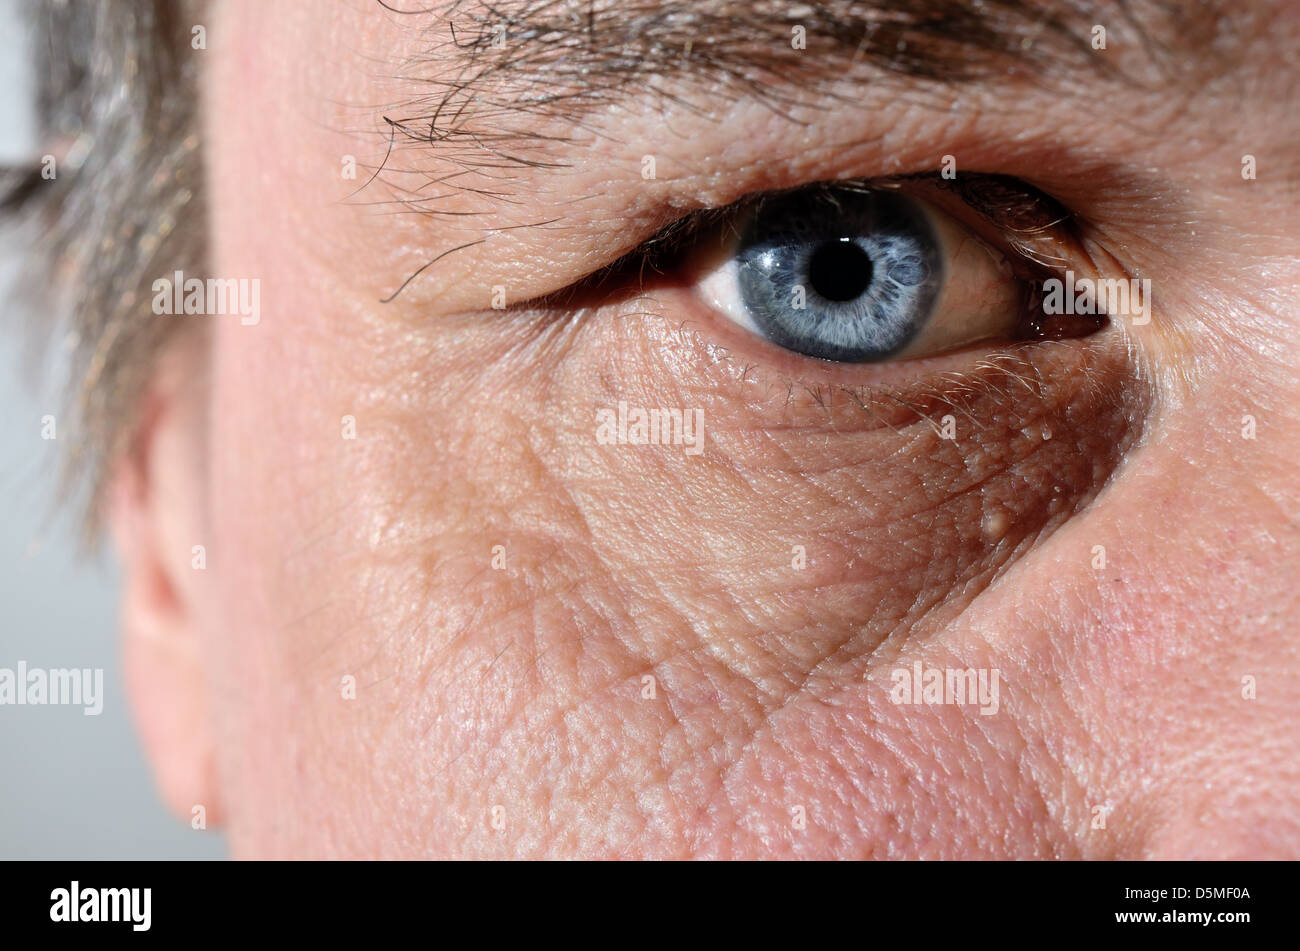 part of a man's face with blue eye - Stock Image